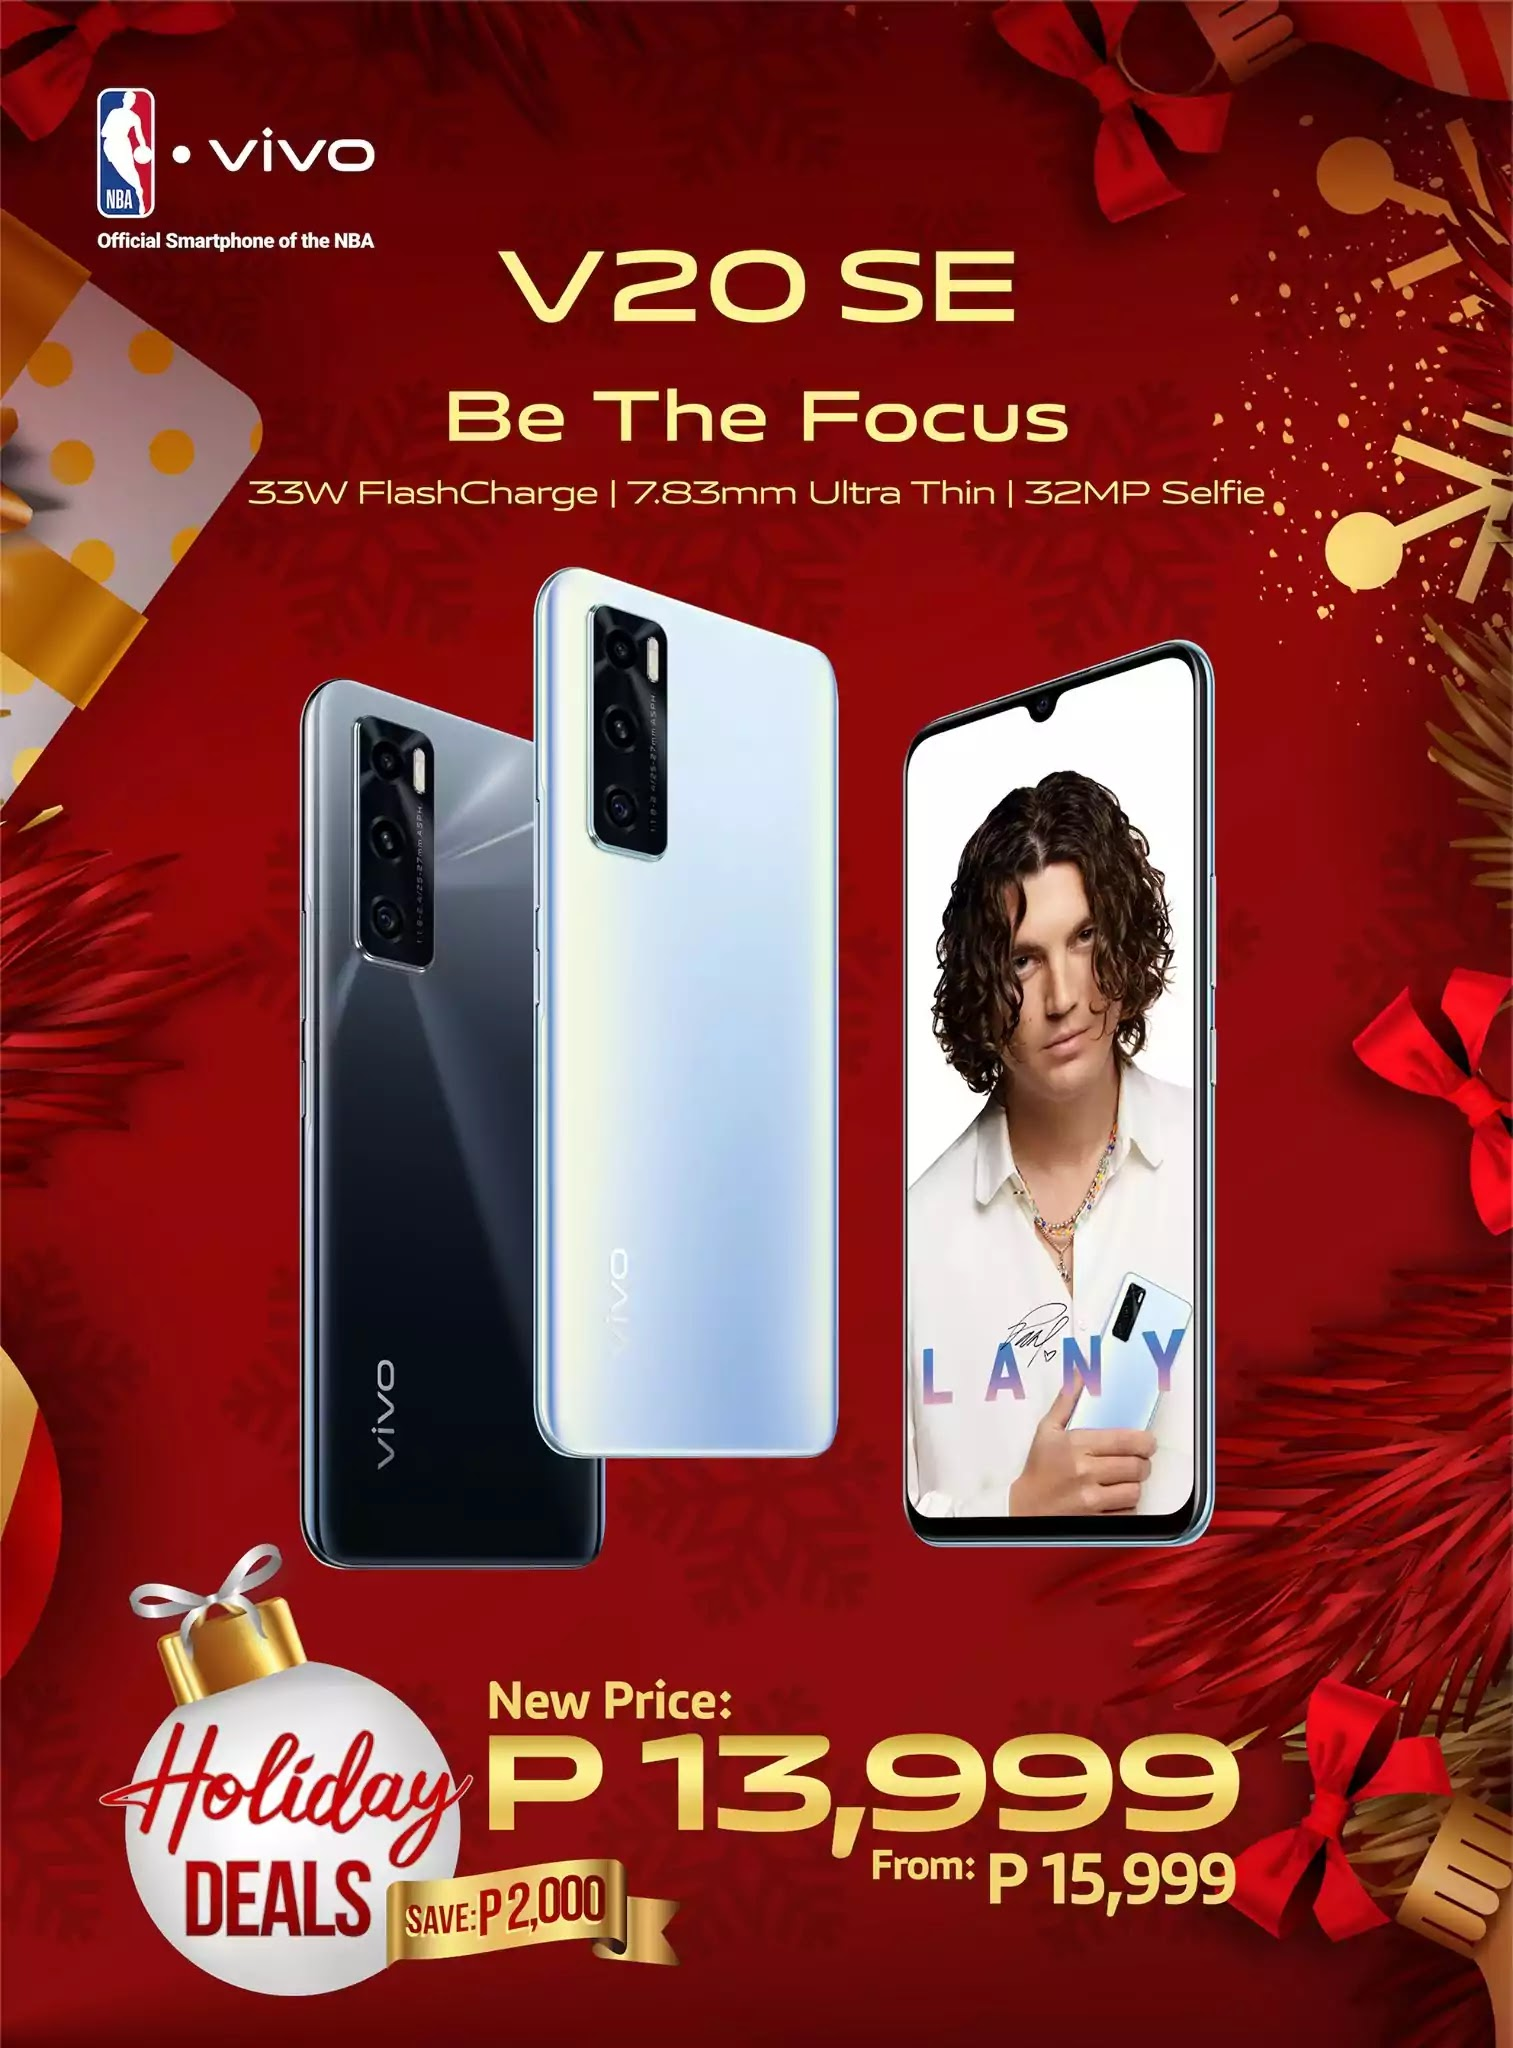 Vivo V20 SE Price Drop